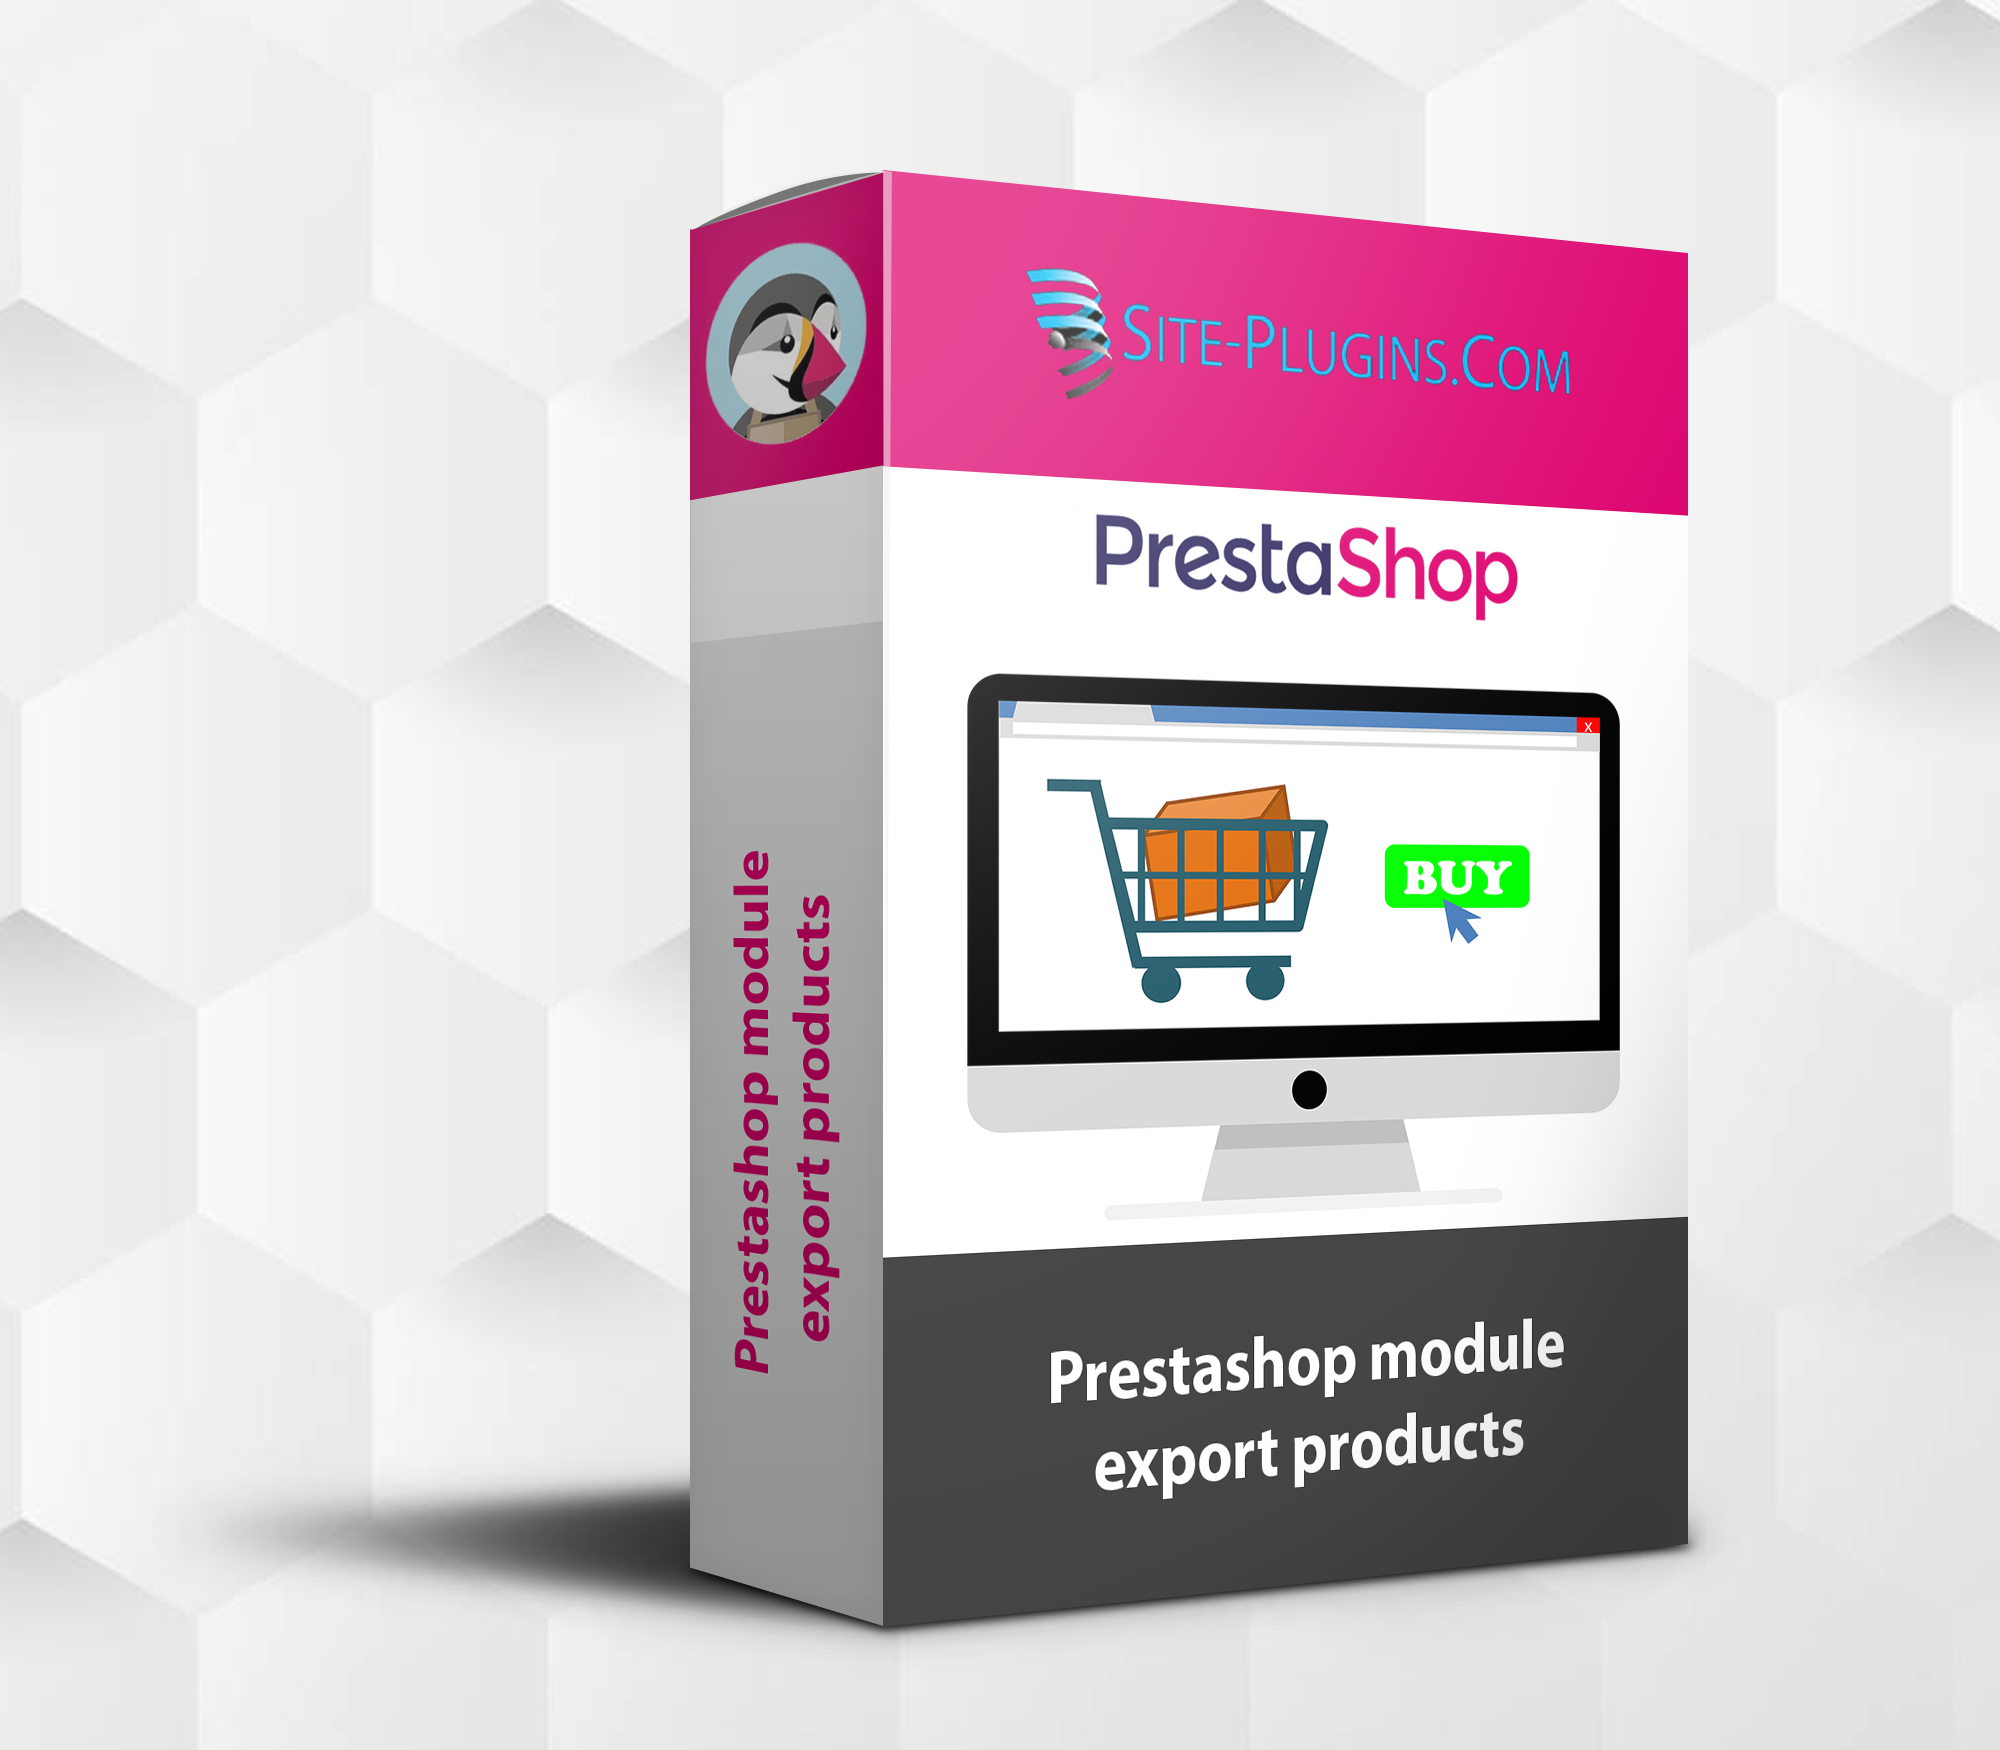 prestashop module export products